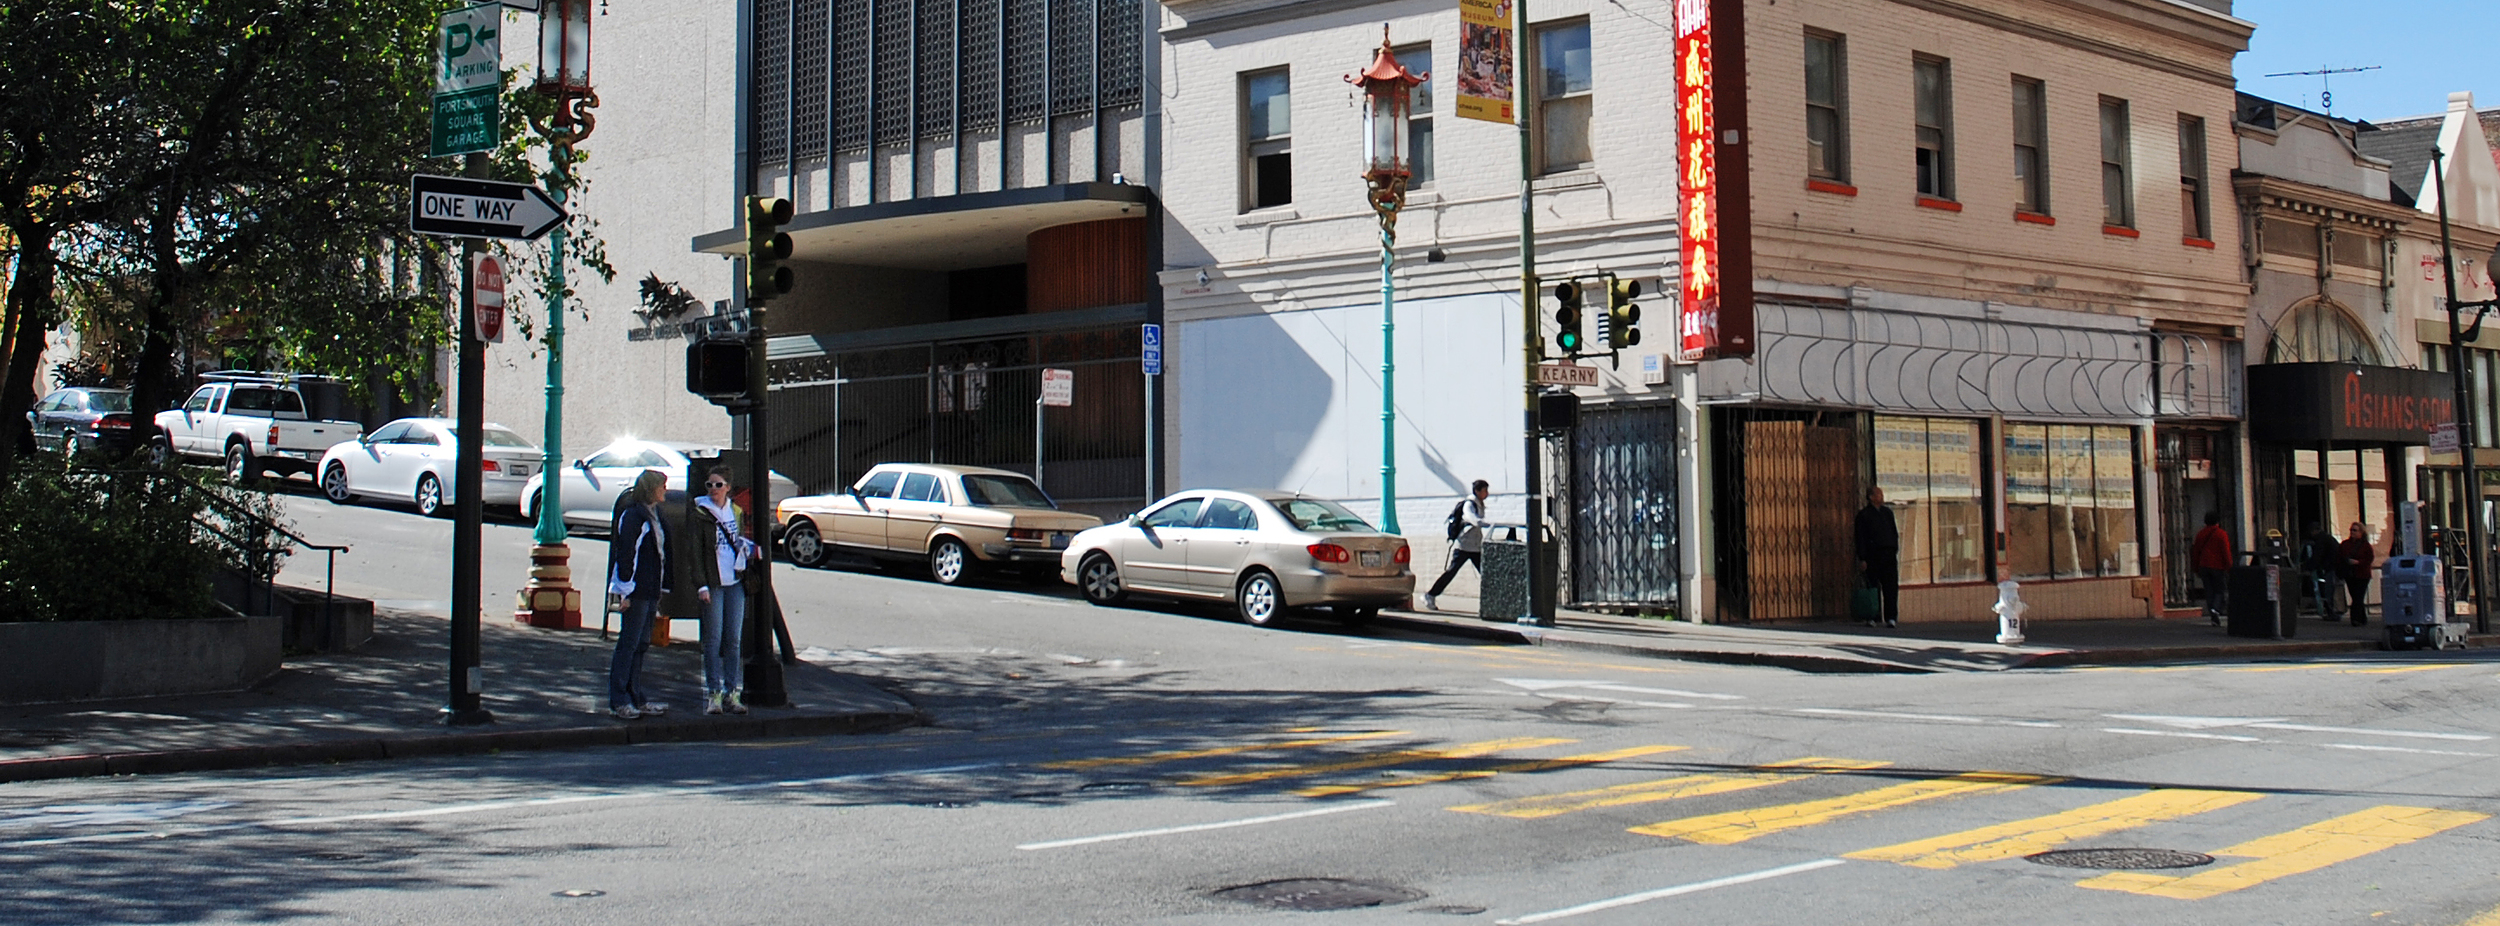 Impact - Chase Through Chinatown - Su Lin to the Rescue